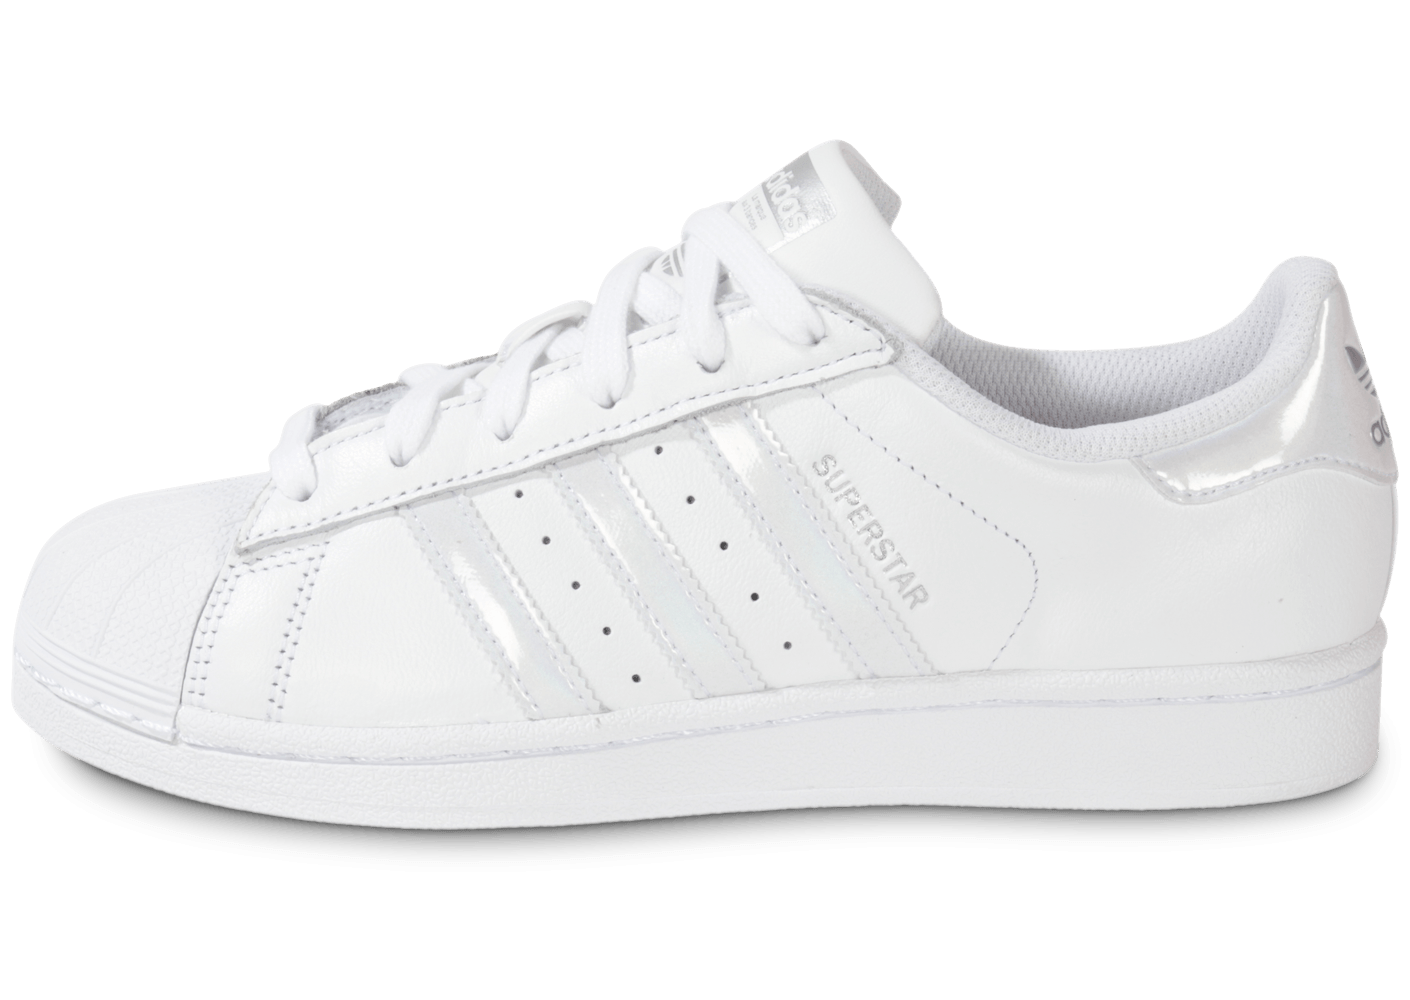 adidas superstar blanche chaussures adidas chausport. Black Bedroom Furniture Sets. Home Design Ideas